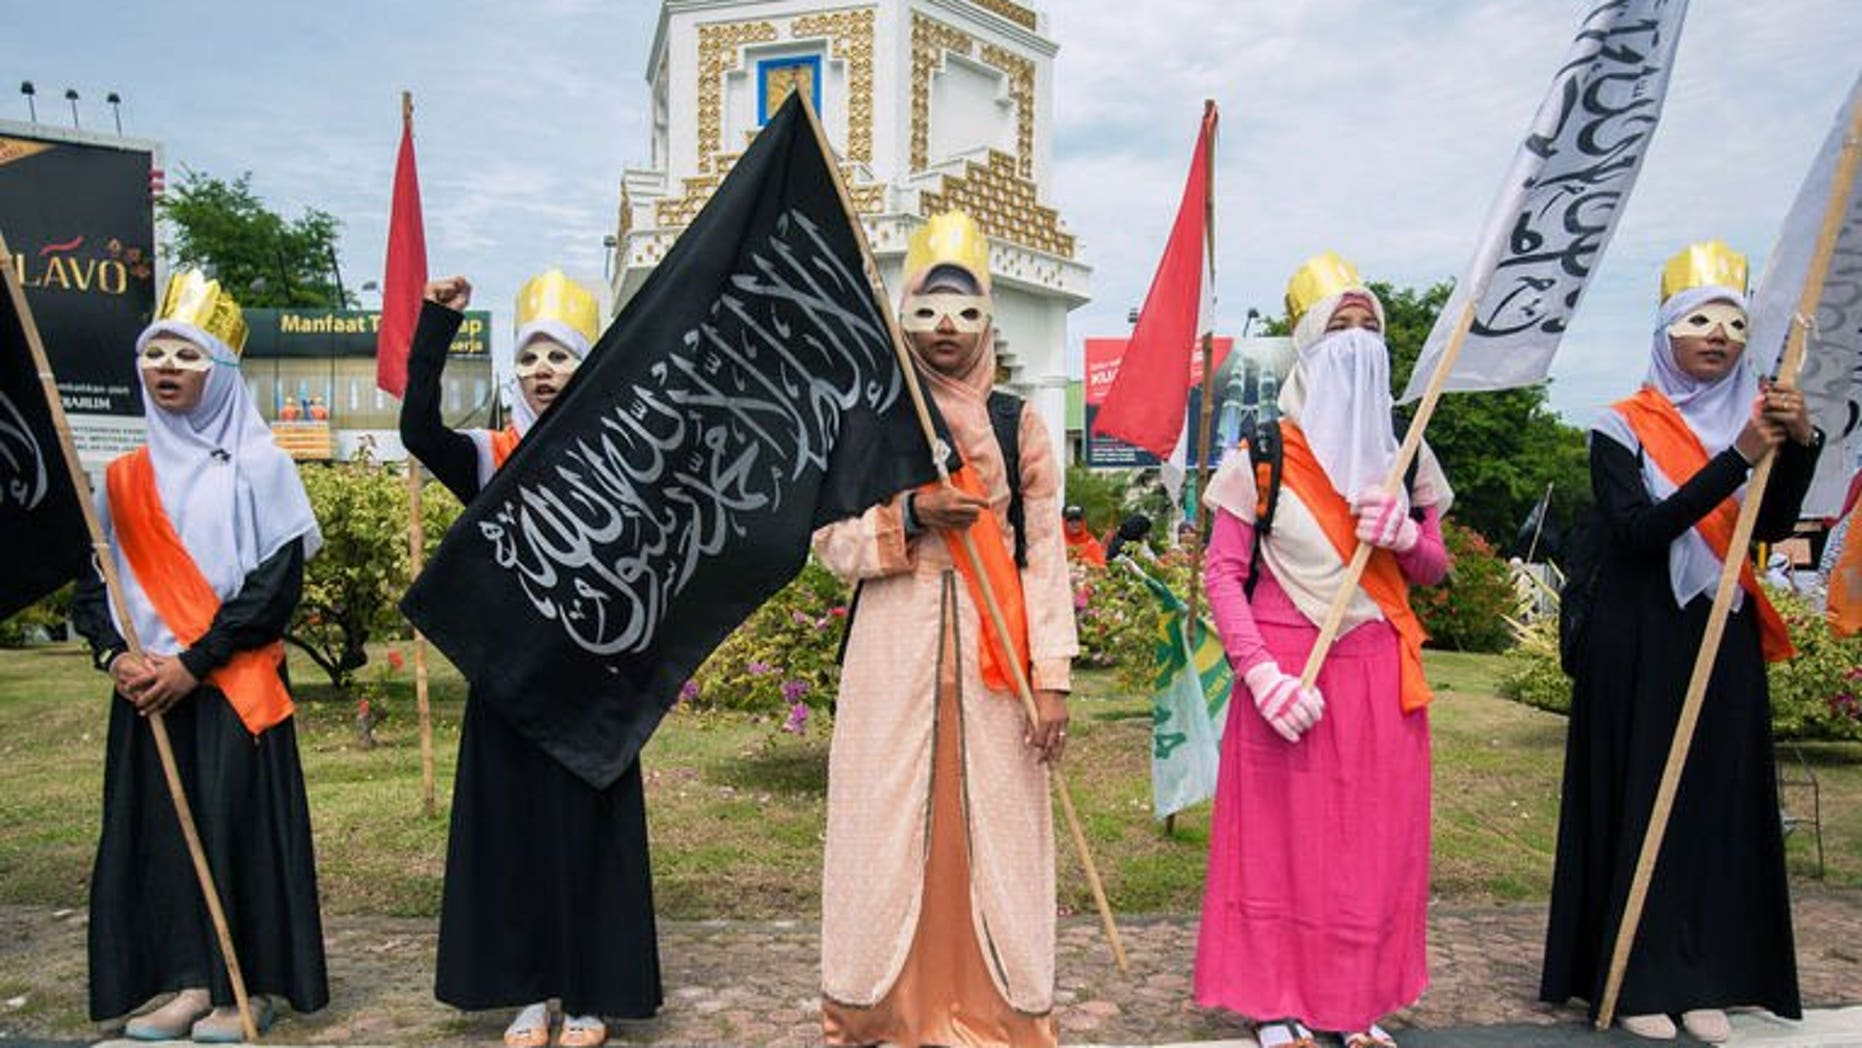 Muslim women stage a protest against the Miss World beauty pageant contest in Banda Aceh, northern Sumatra island, on September 14, 2013. The Miss World beauty contest, which has attracted fierce opposition by hardline Islamic groups in Indonesia, is now facing another challenge -- a rival pageant exclusively for Muslims.